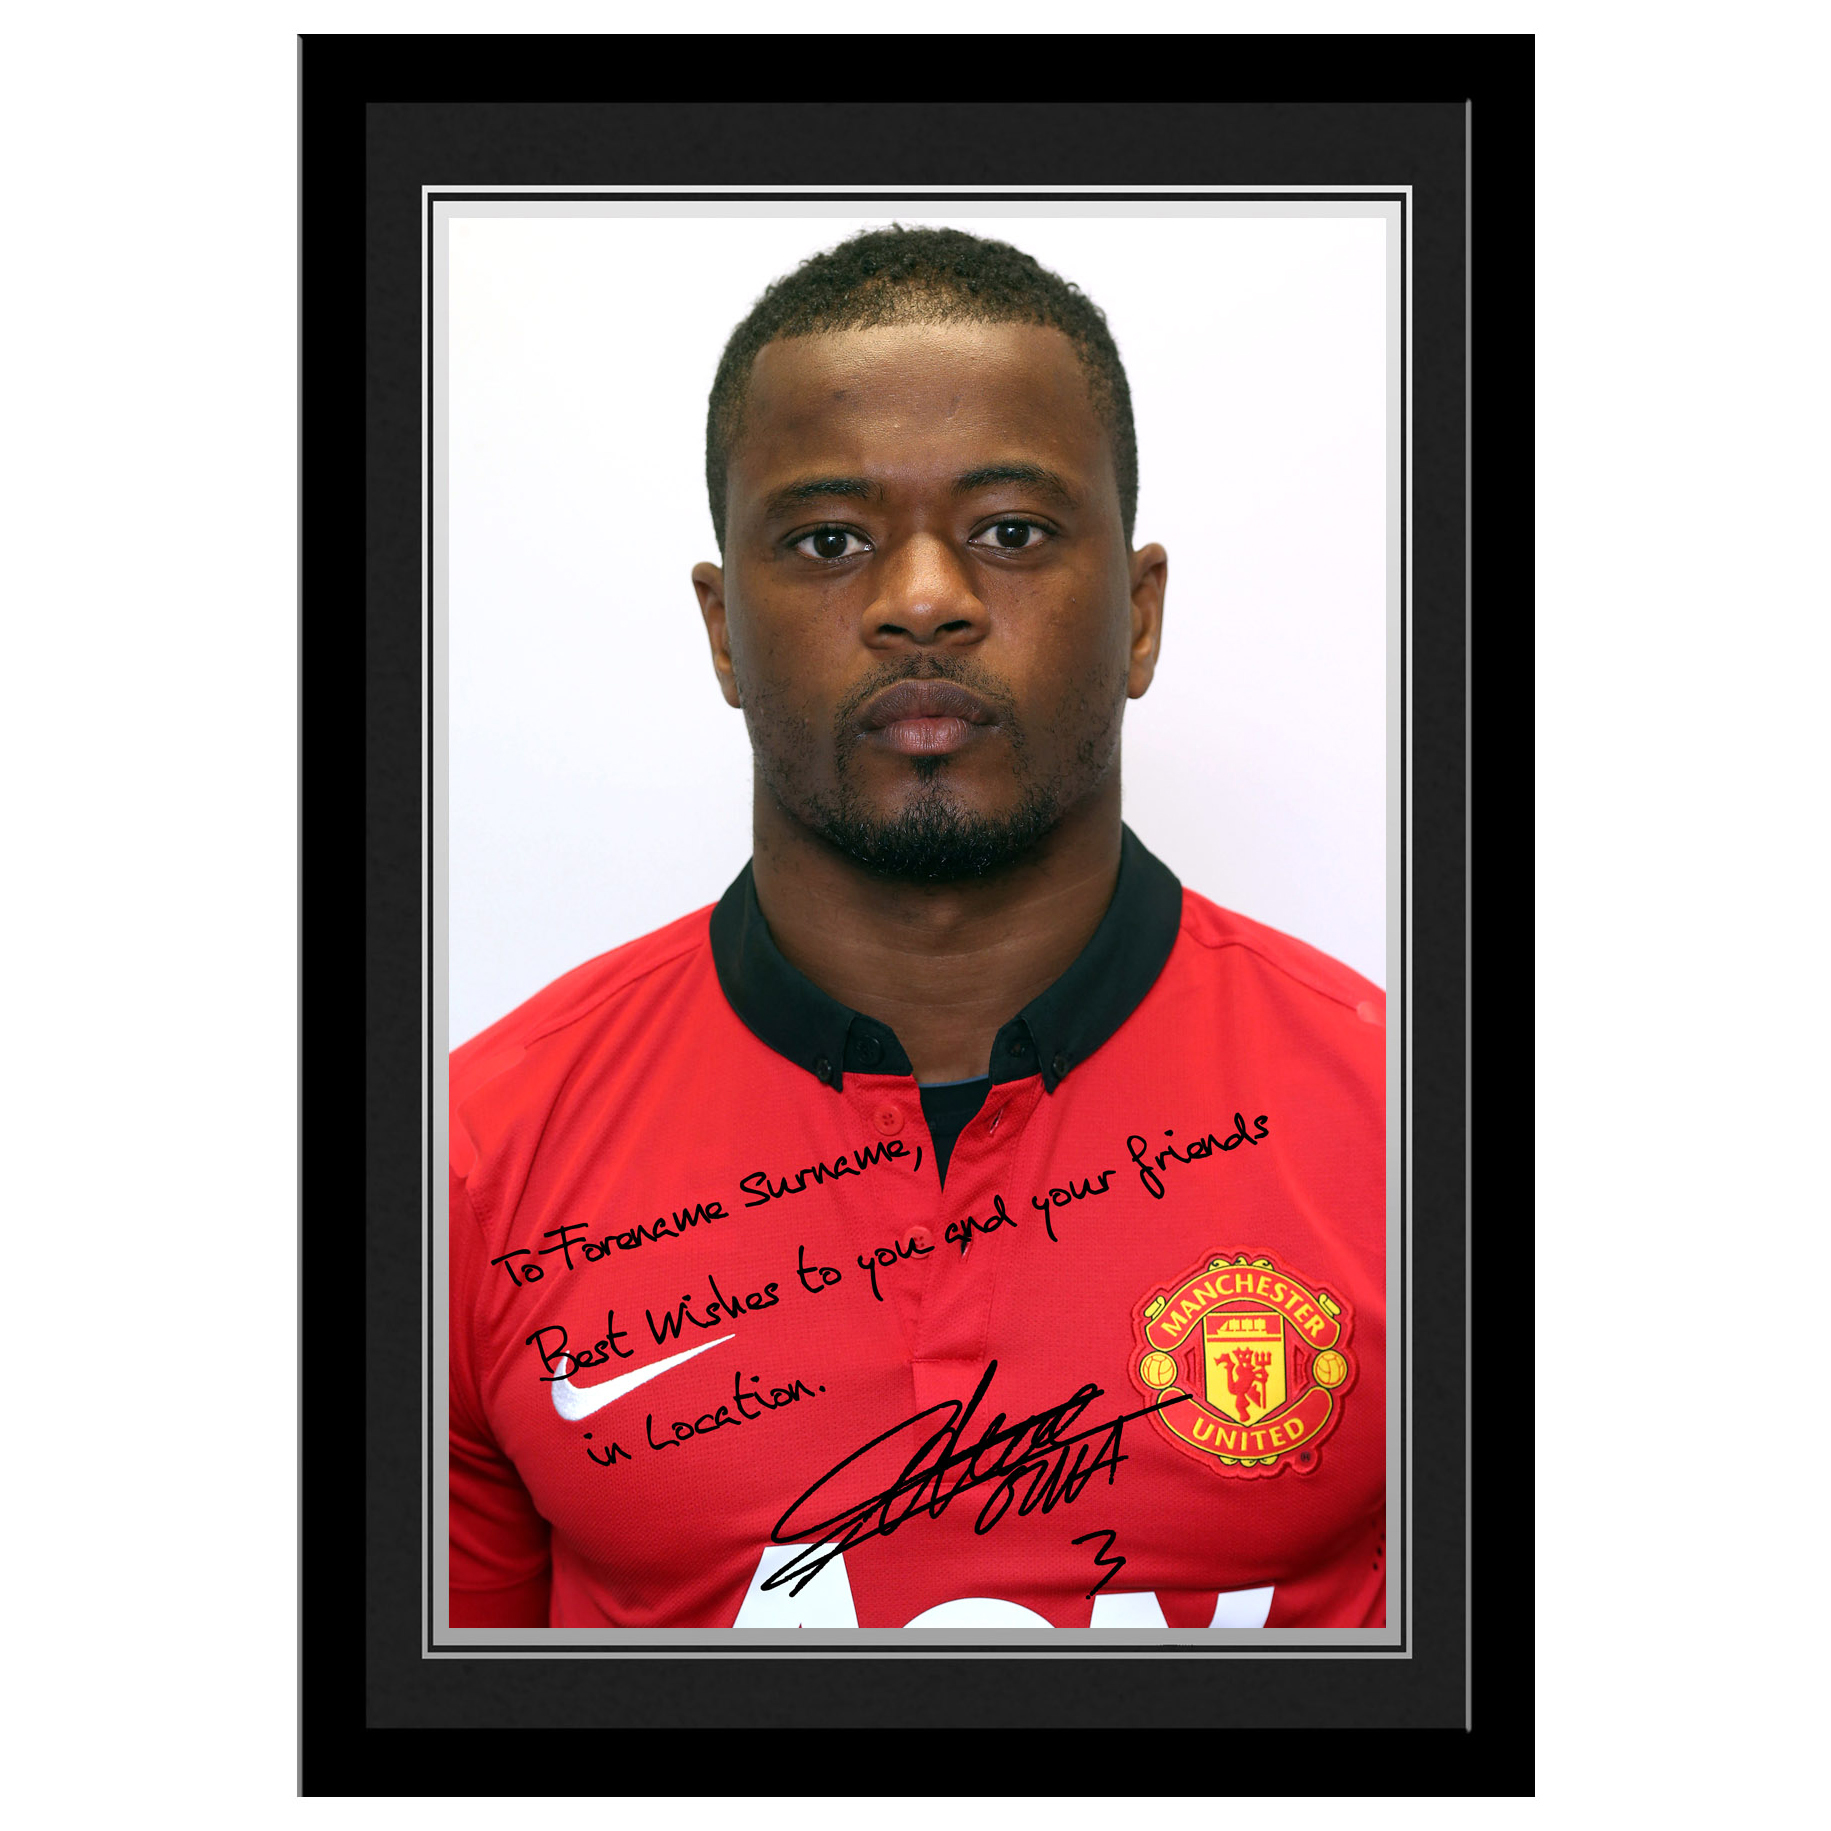 Manchester United Personalised Signature Photo Framed - Evra